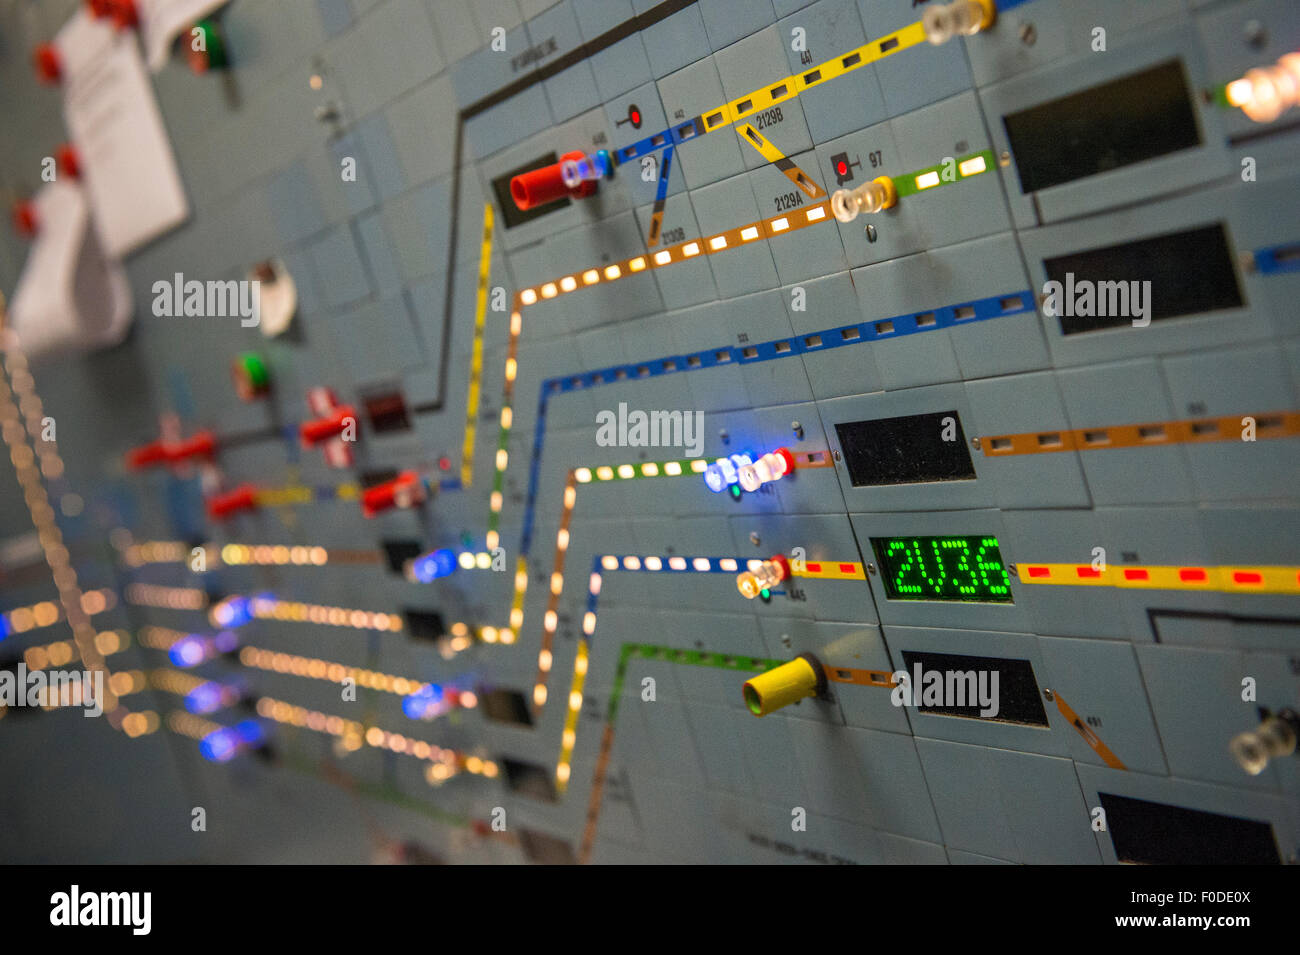 Electronic display board at a railway signalling centre in England. - Stock Image